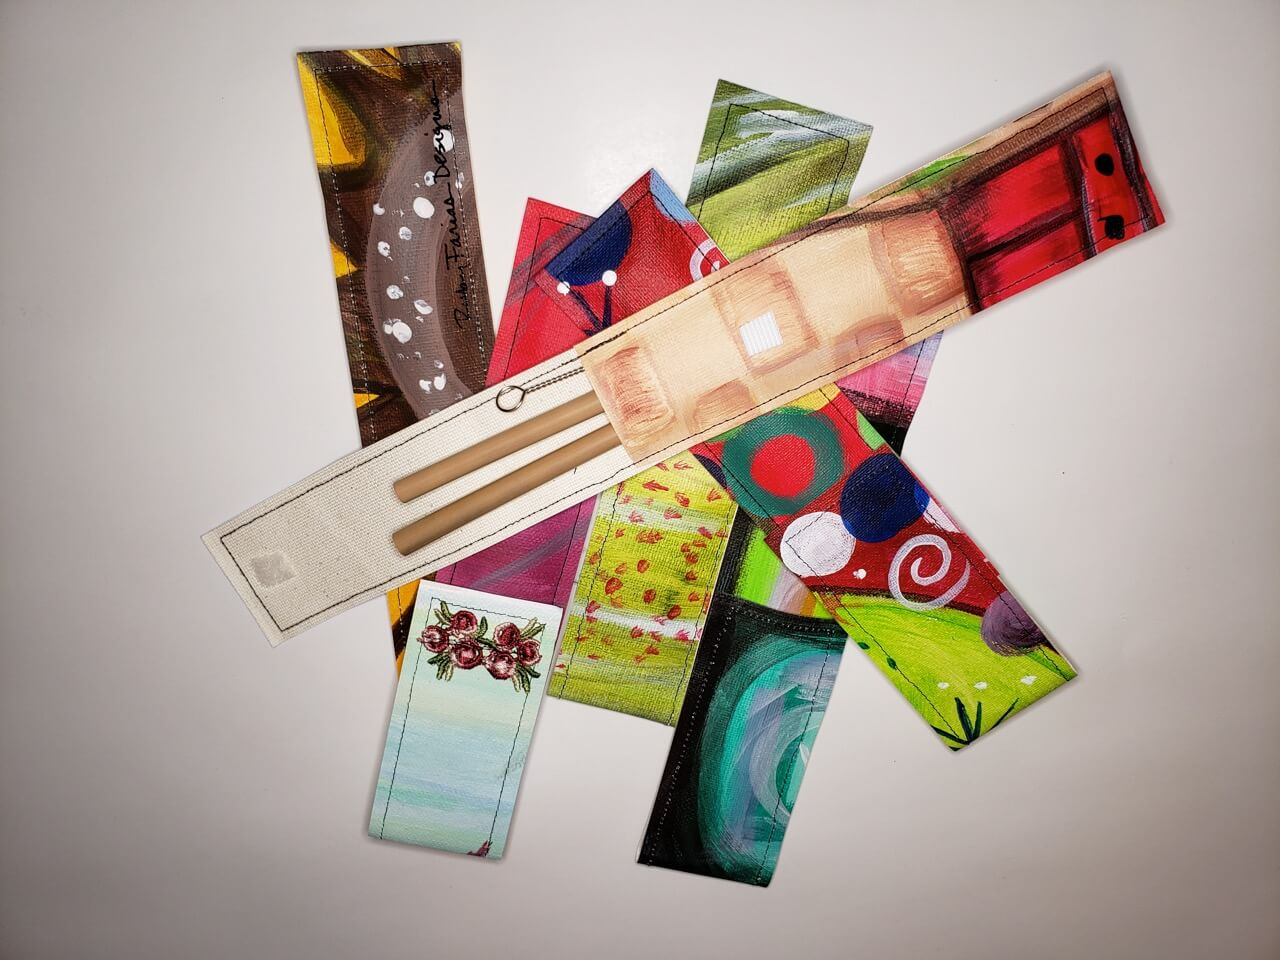 Green Gift Guide - Last Straw